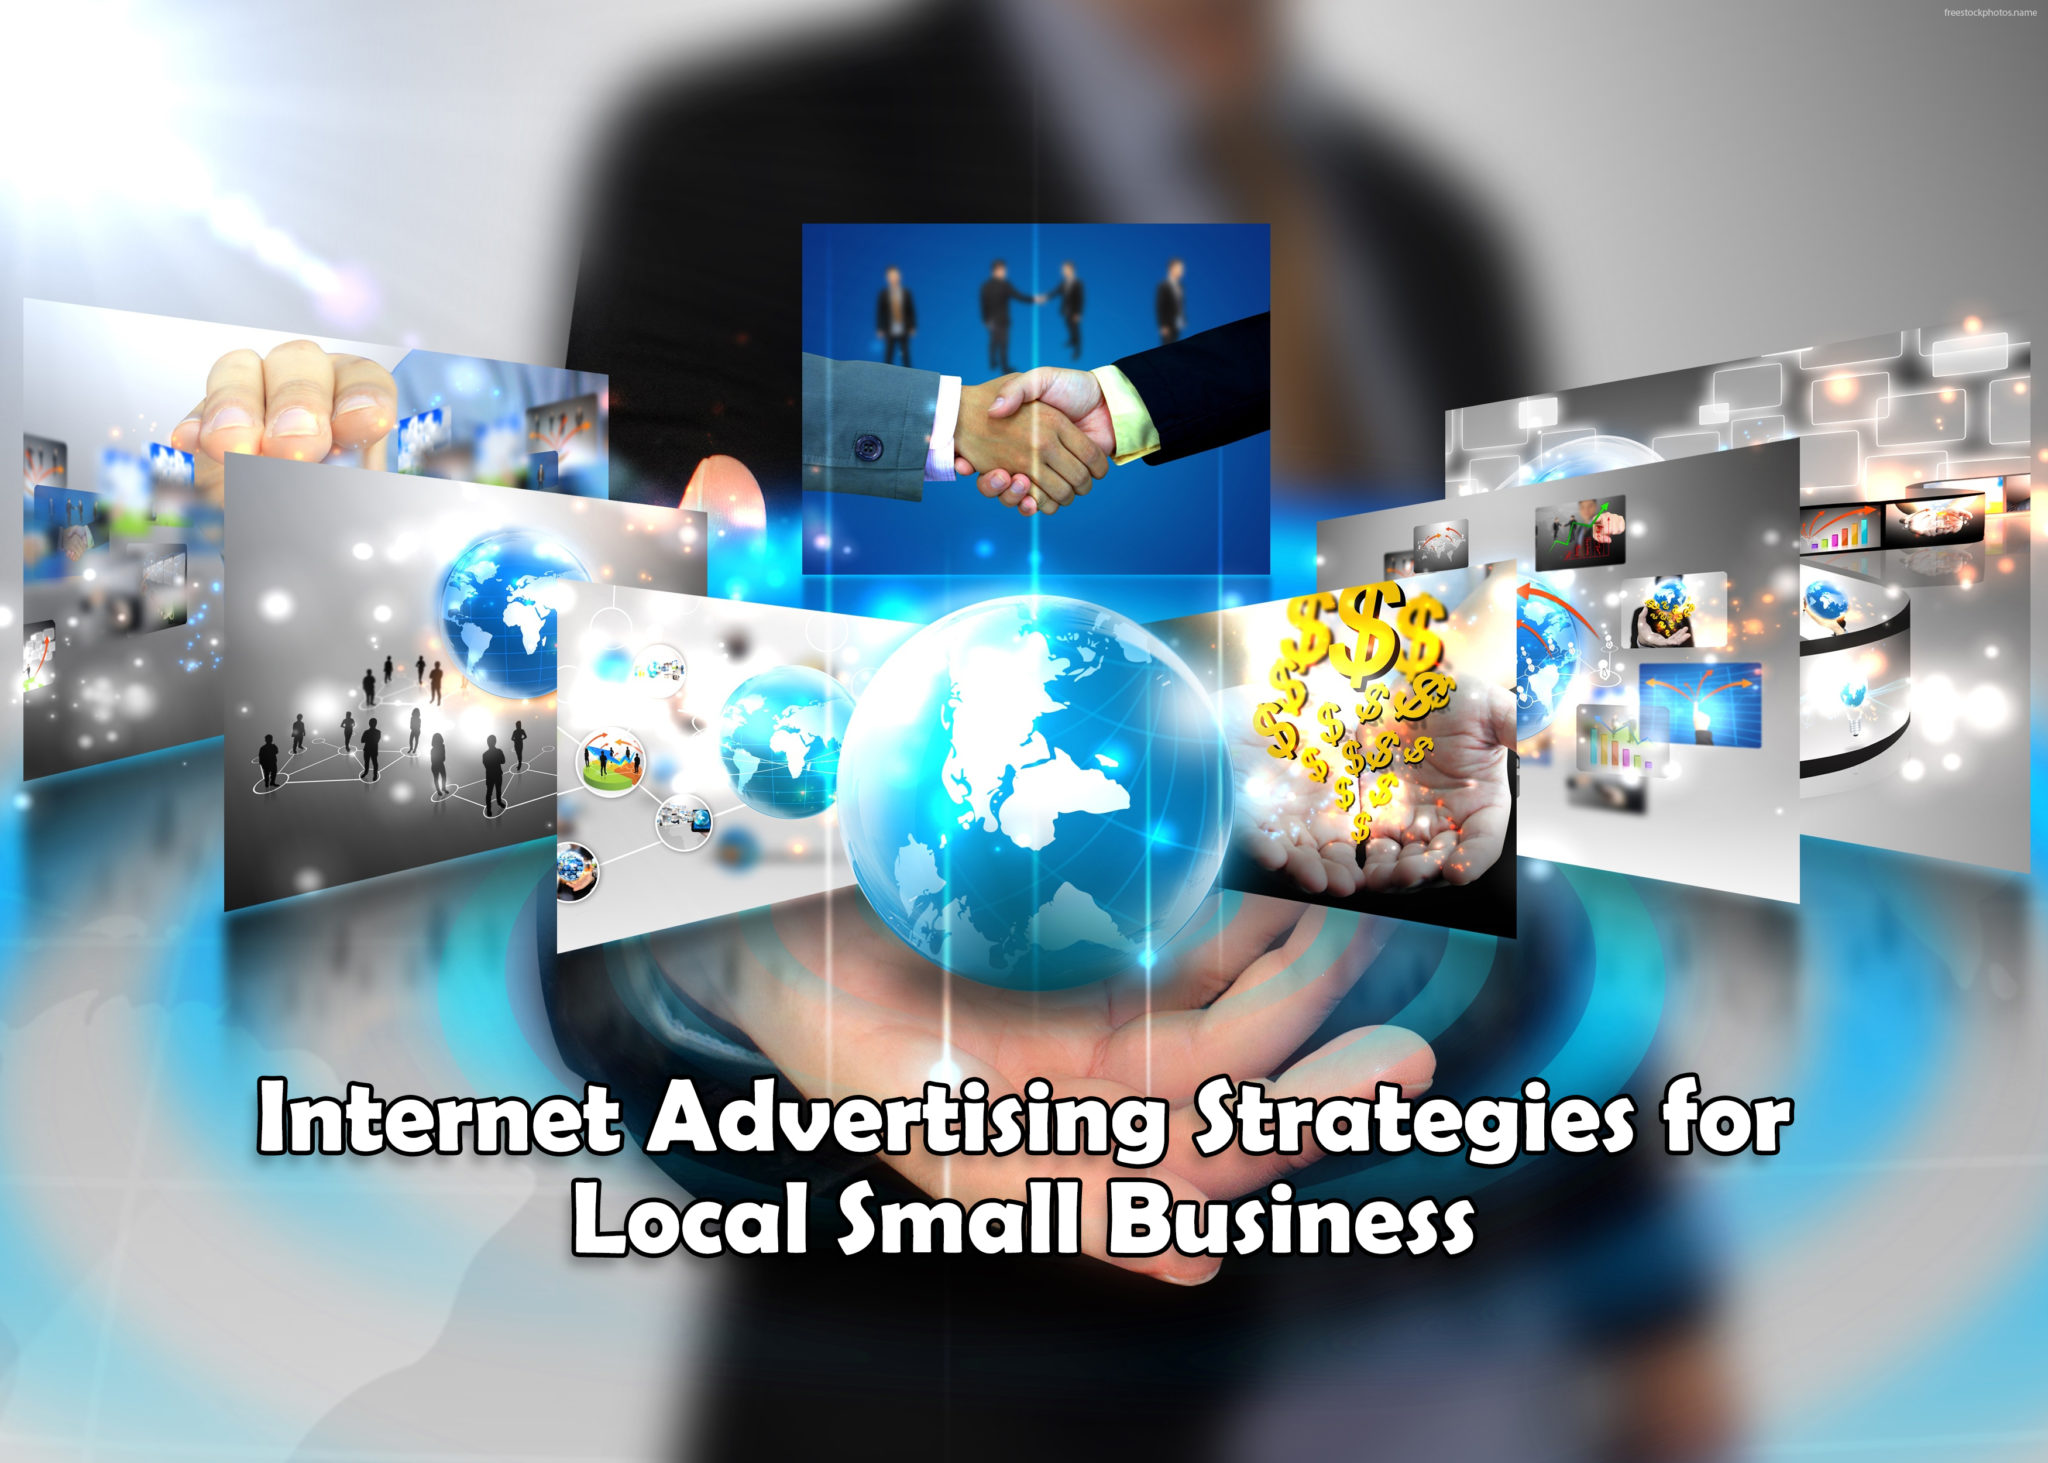 Internet Advertising Strategies for Local Small Business